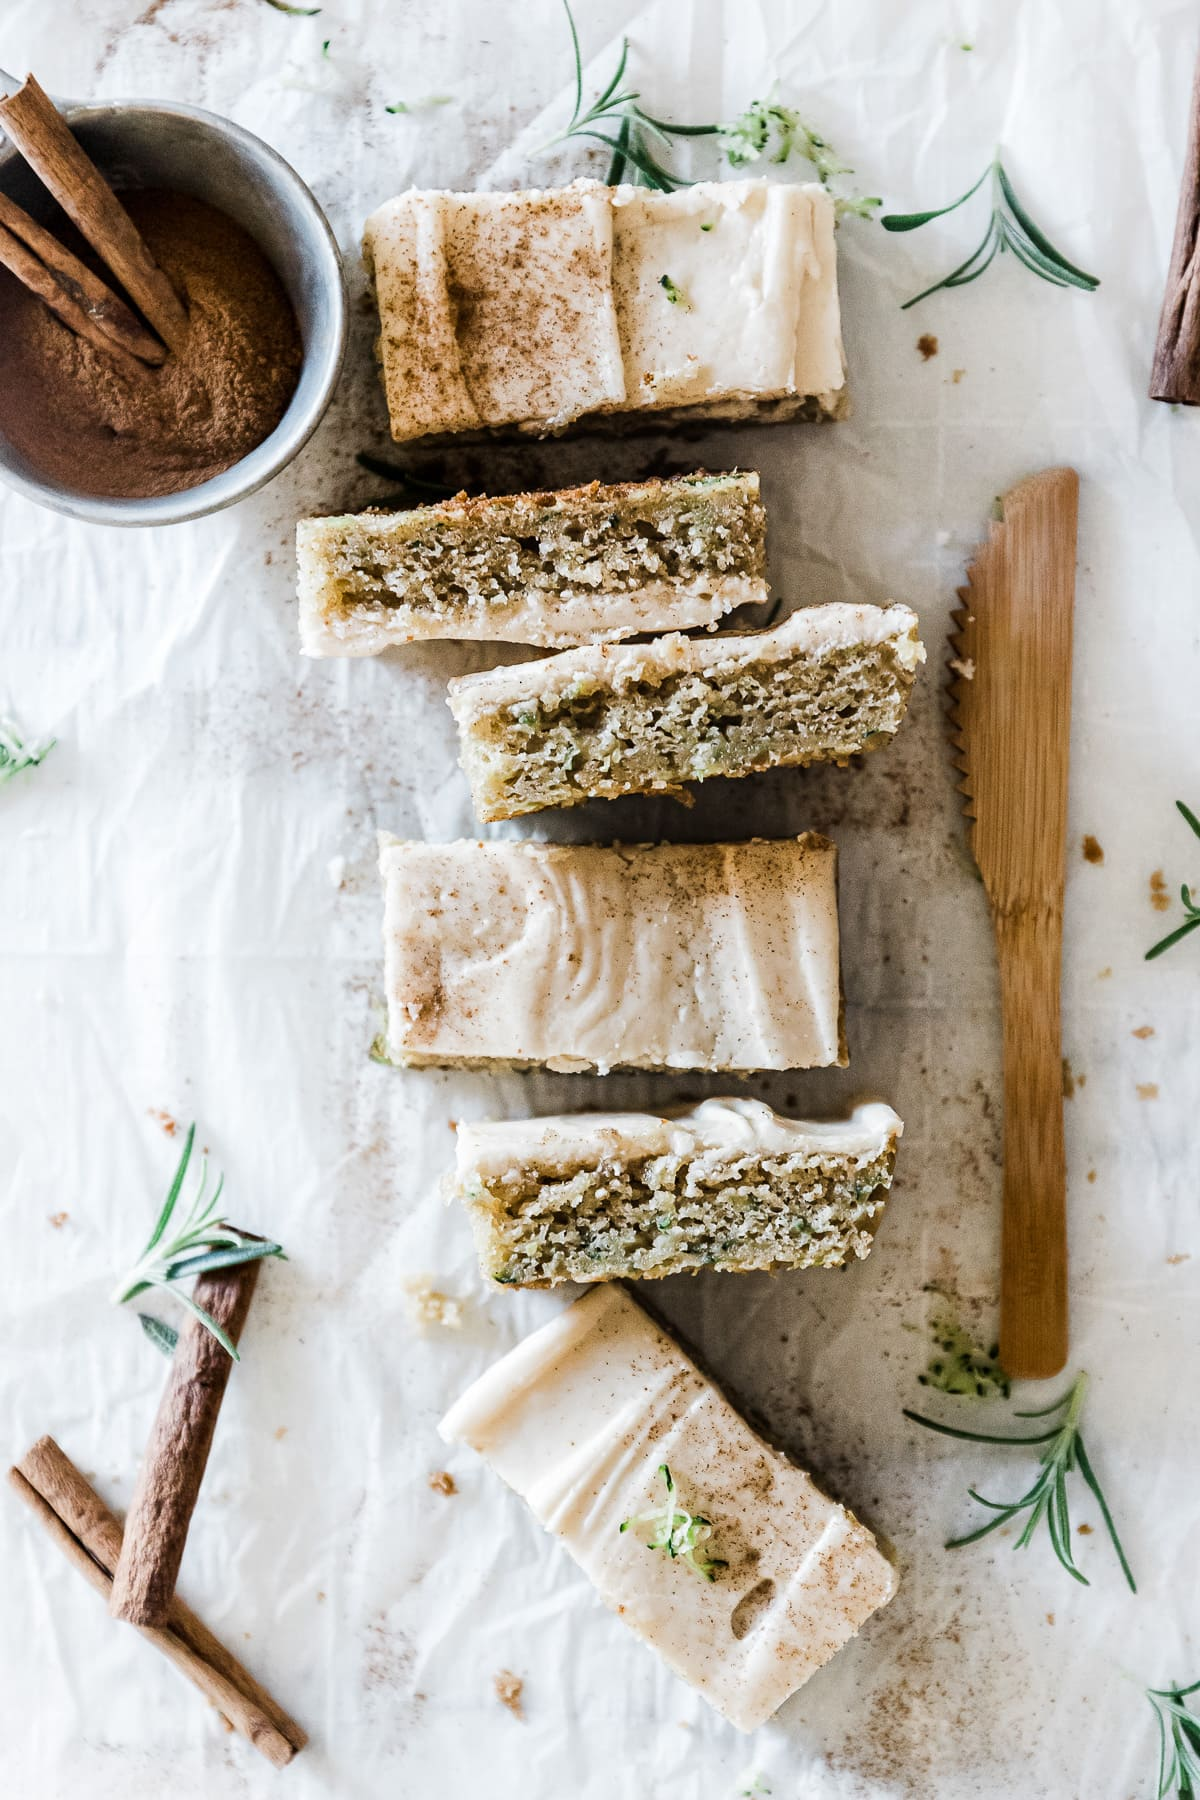 Siz zucchini bars lined up next to a wooden knife. There is bowl of cinnamon to the side.